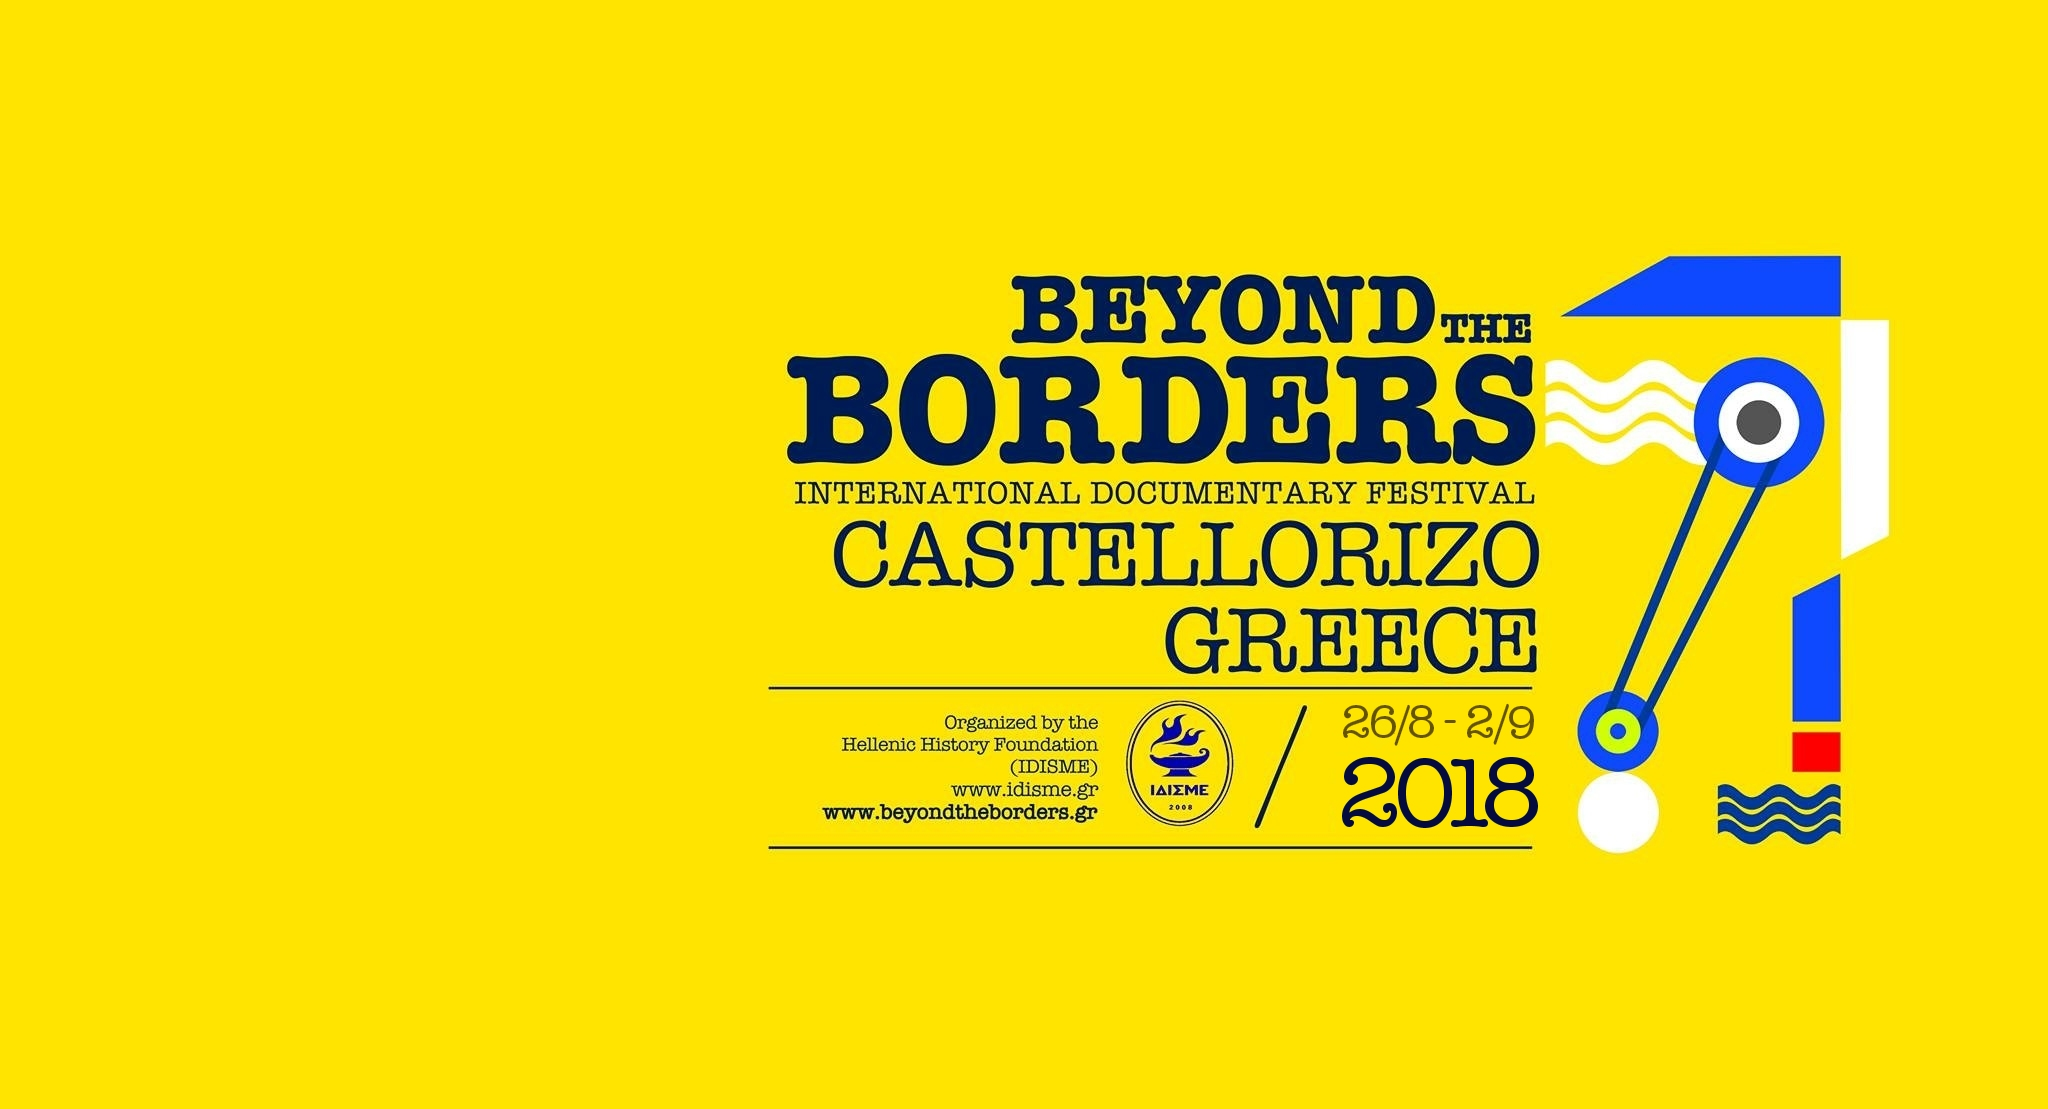 3rd Beyond the Borders International Documentary Festival-2018